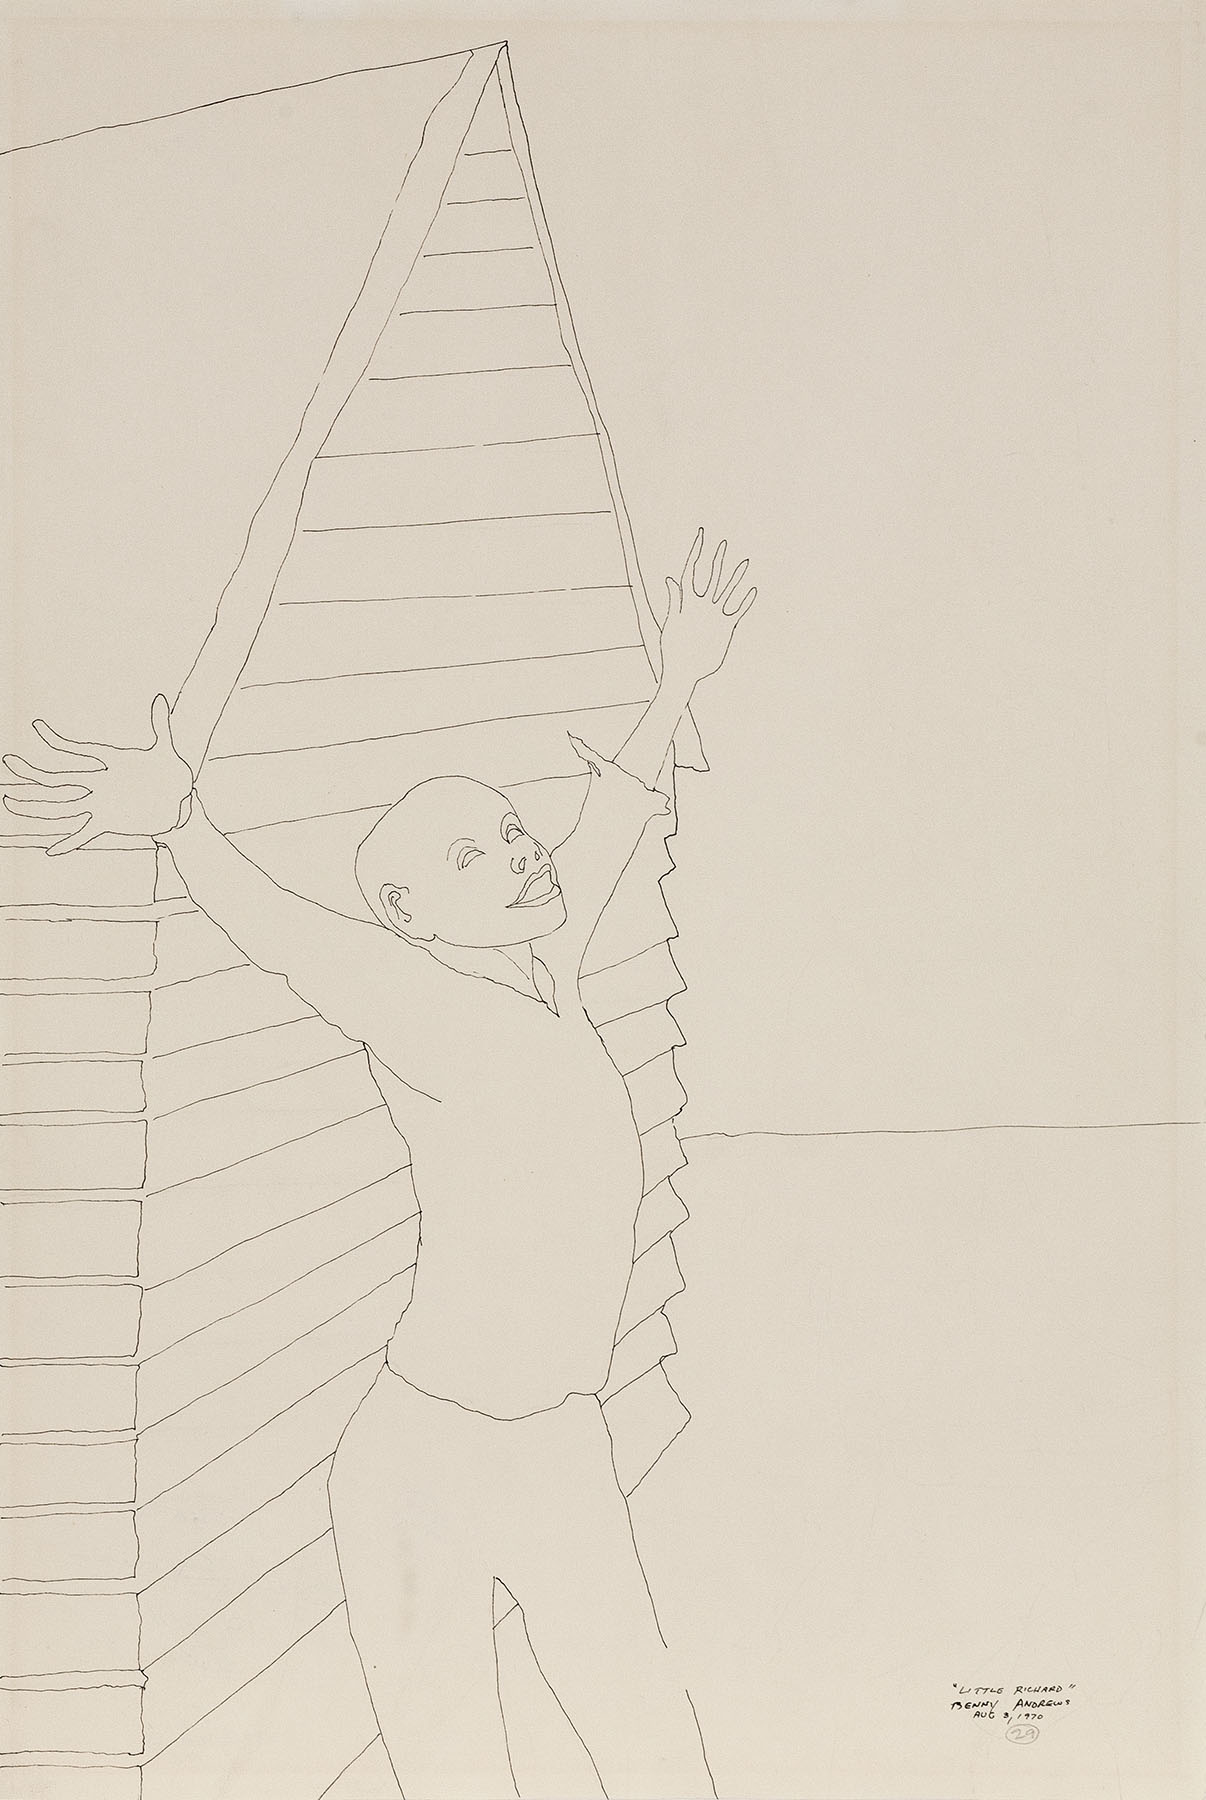 """Little Richard (Study for Symbols), 1970 pen and ink on paper 18 x 12"""""""